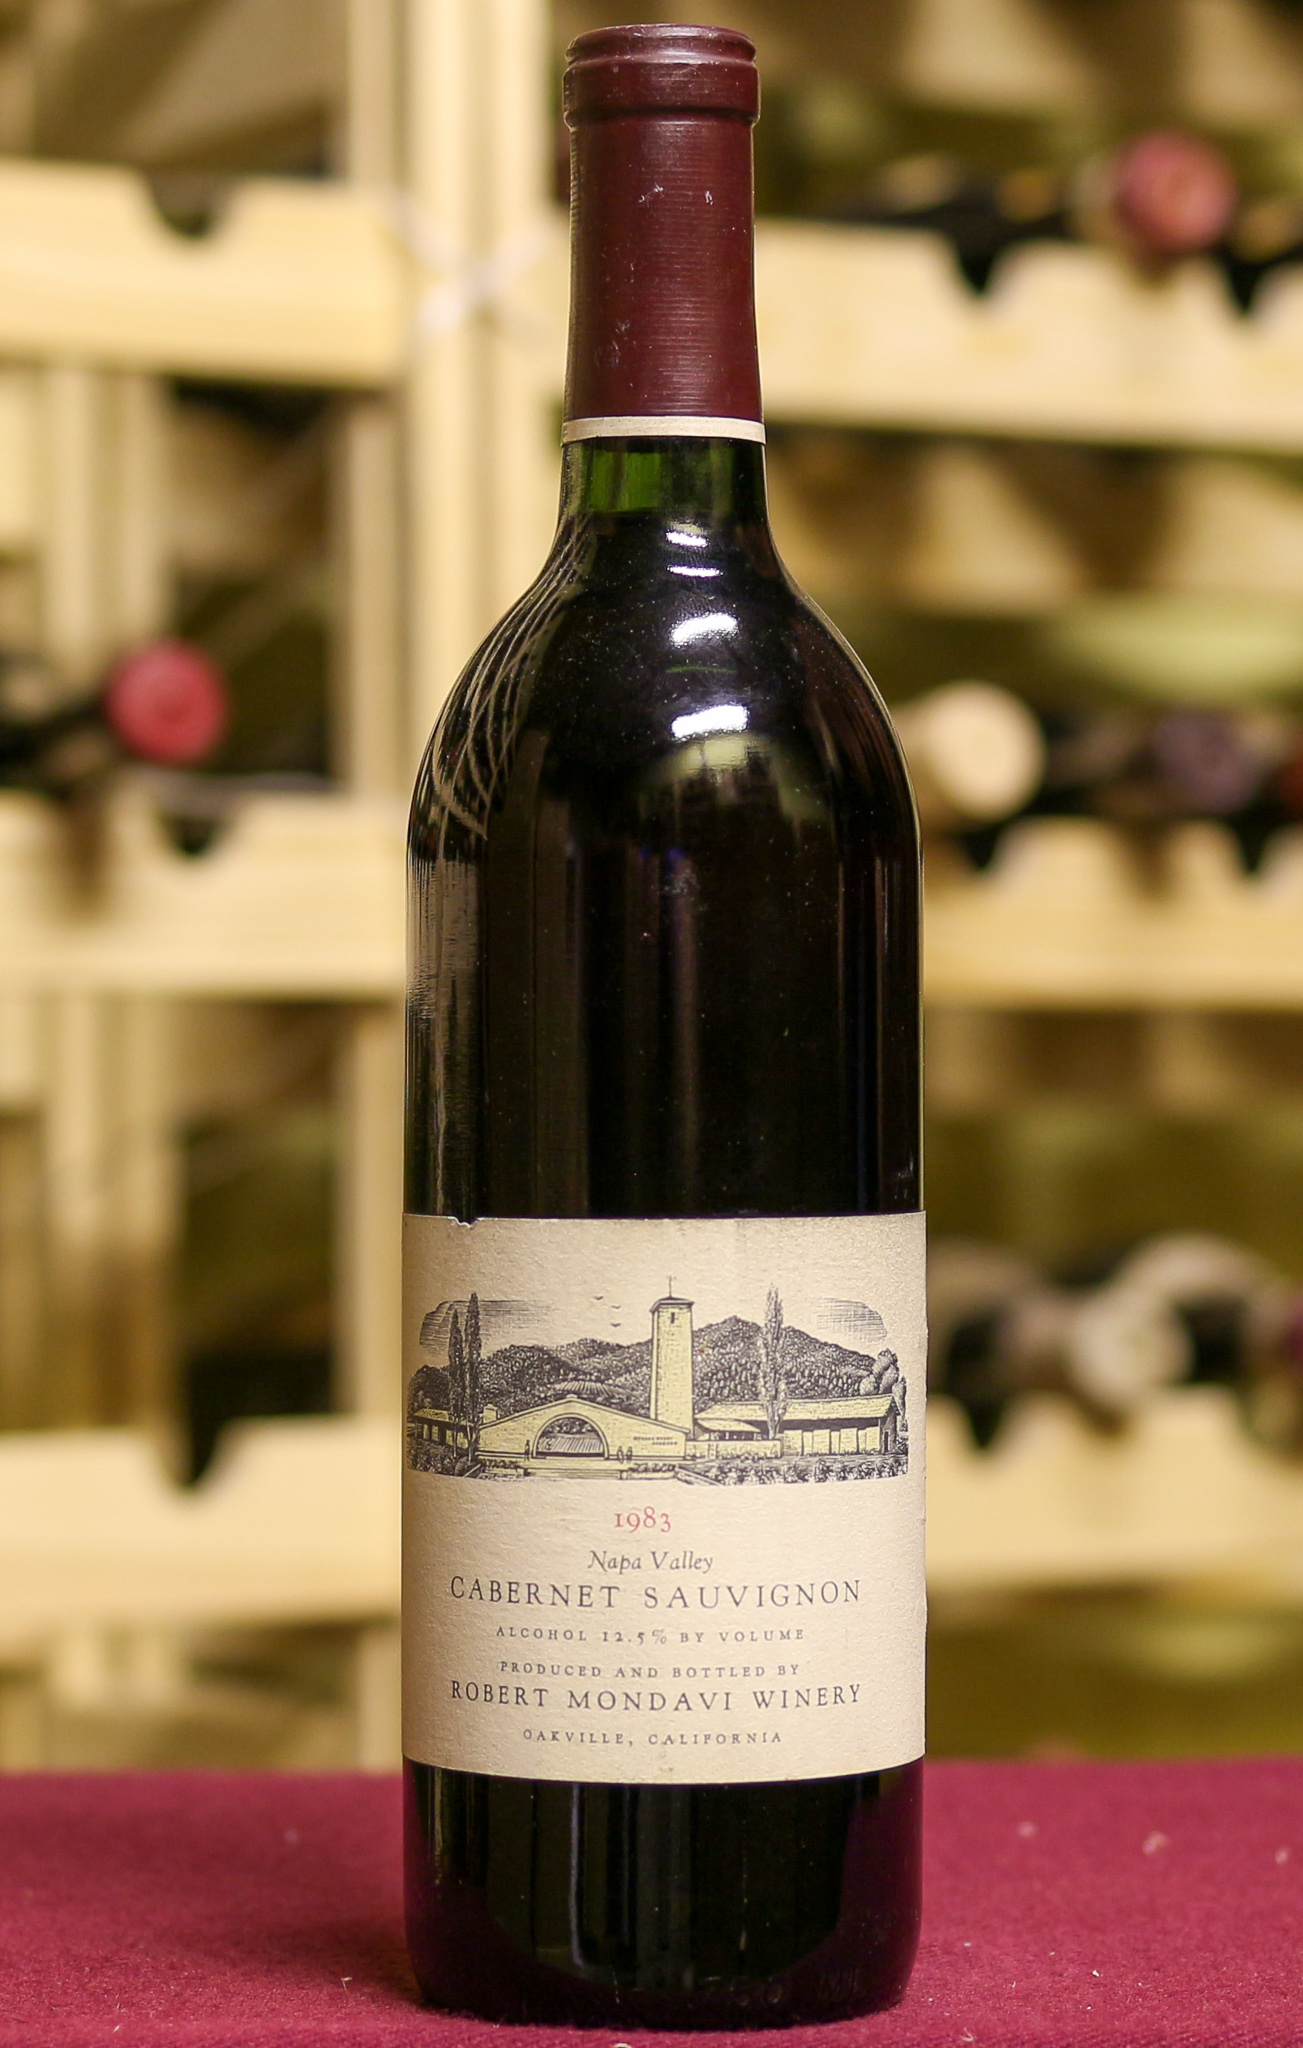 Вино Napa Valley Robert Mondavi Winery 1983 года урожая